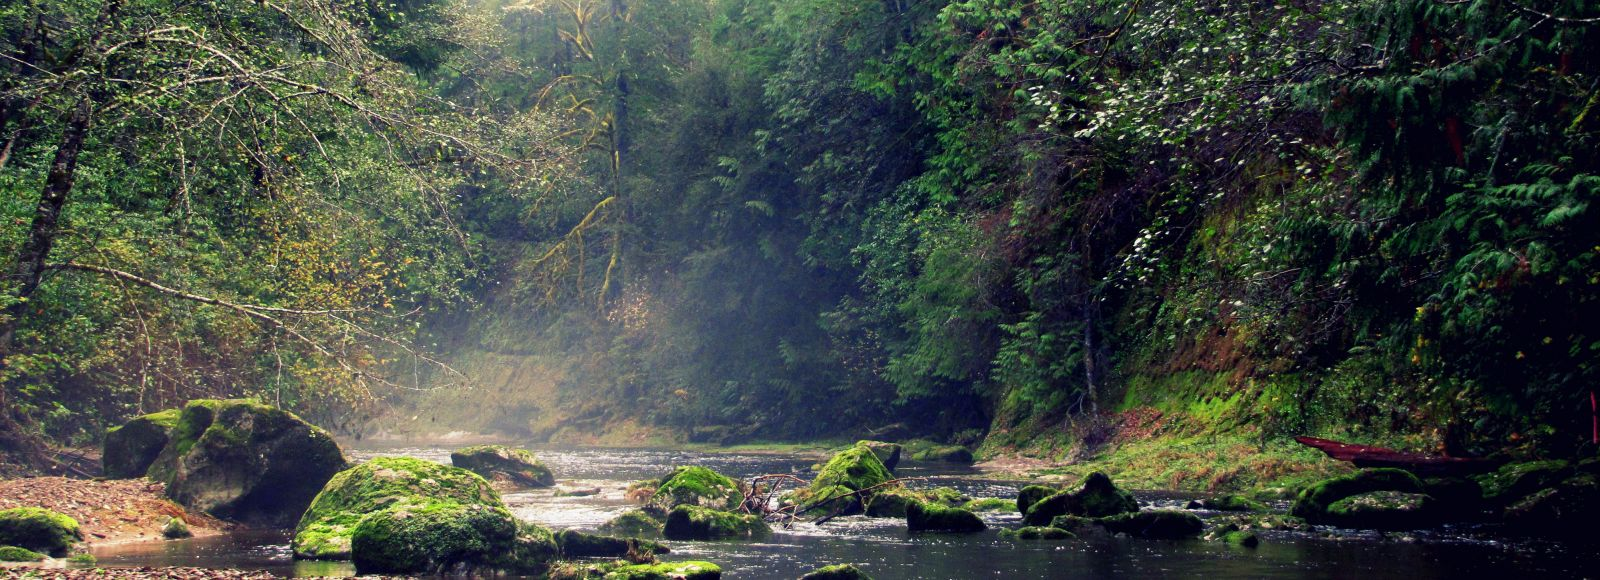 mist rises up off a river running through a lowland coastal forest